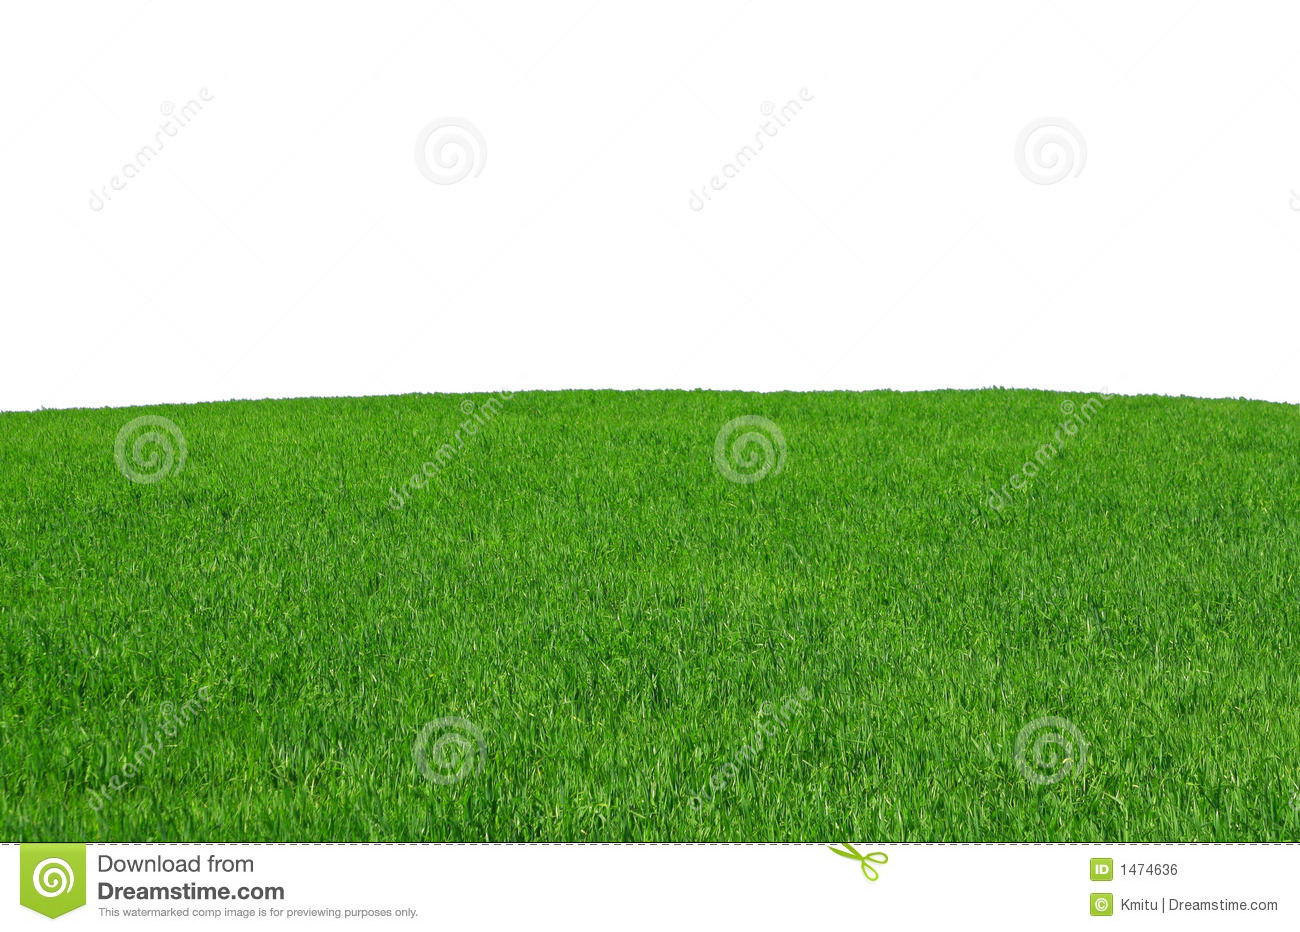 Isolated grass field